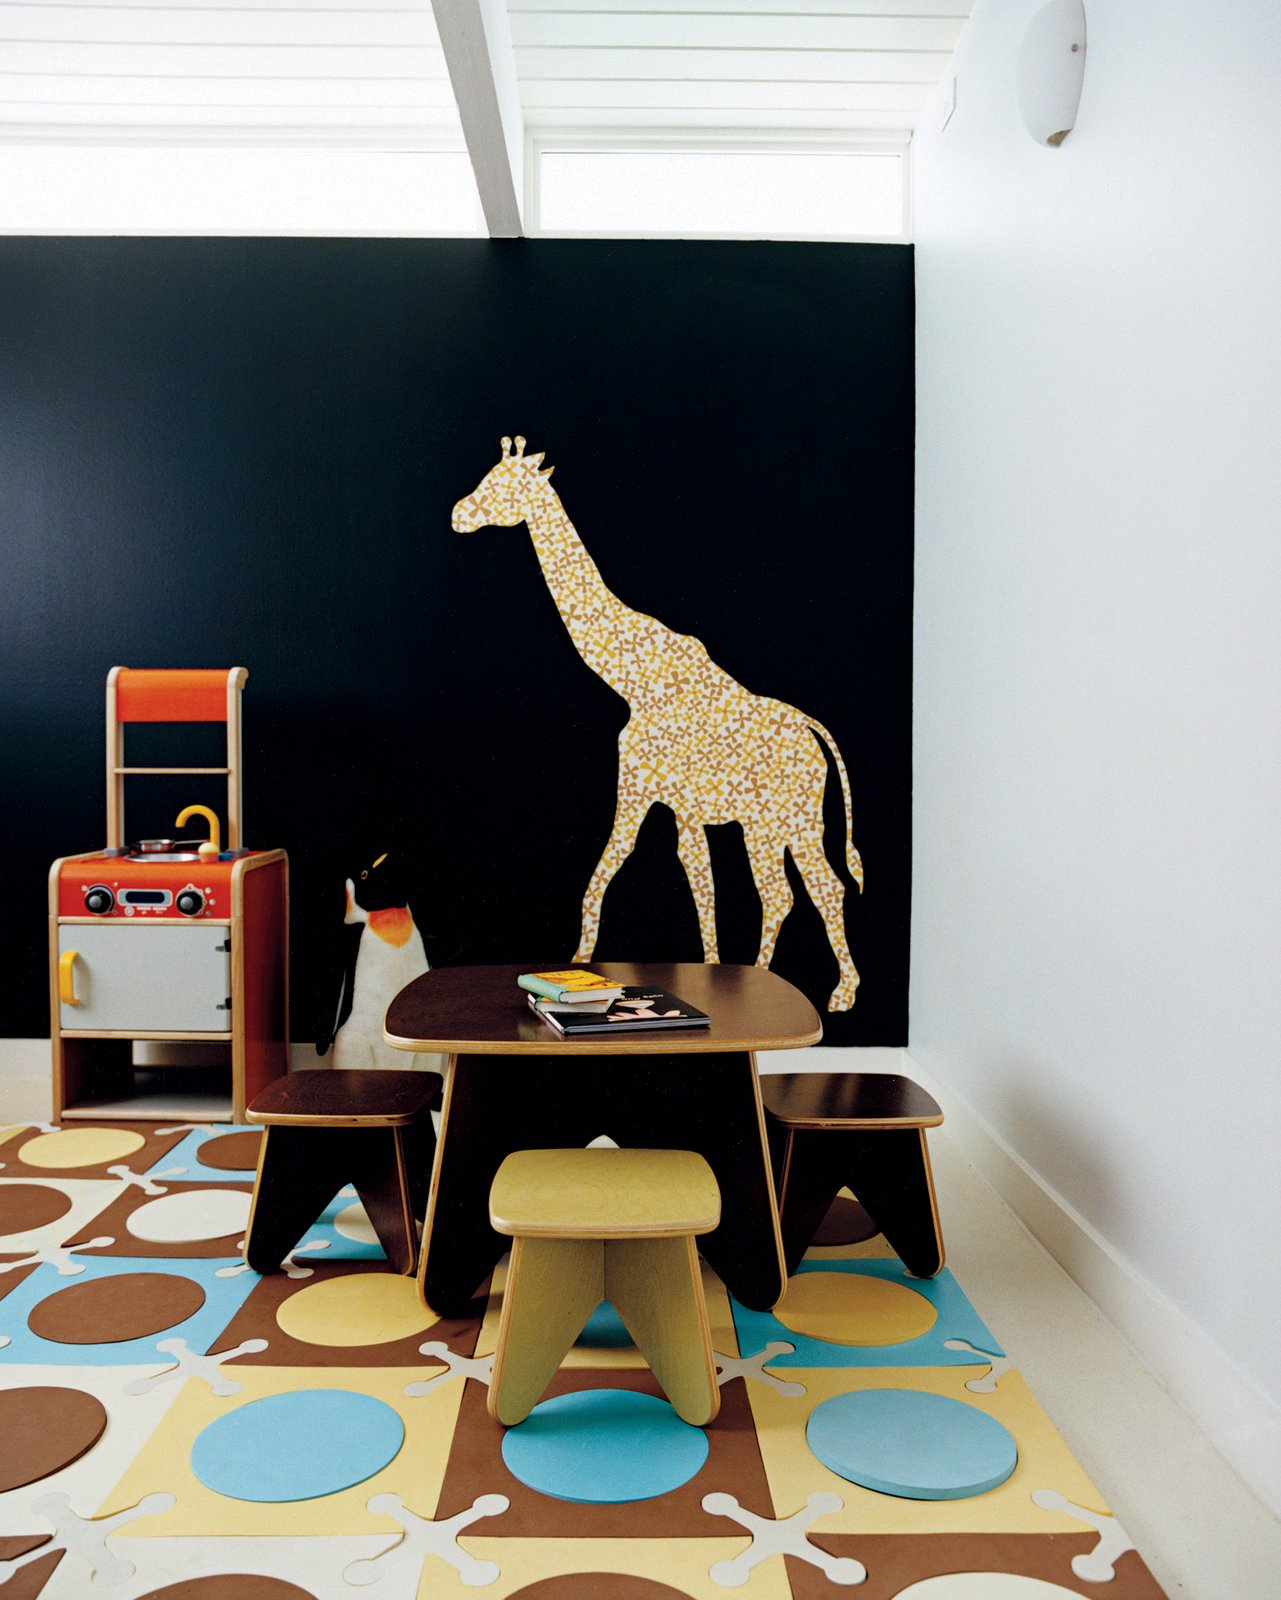 Kids Room, Bedroom Room Type, Rug Floor, and Pre-Teen Age Jennifer and Mattias Segerholt selected a deeply saturated blue hue color for the playroom wall inside their Portland, Oregon, home. All the interior walls are painted with matched hues from Le Corbusier's Polychromie Architecturale, a book that the pair pored over for months. Photo by John Clark.  Chalkboard Walls in Kitchens and Kids' Rooms by Jaime Gillin